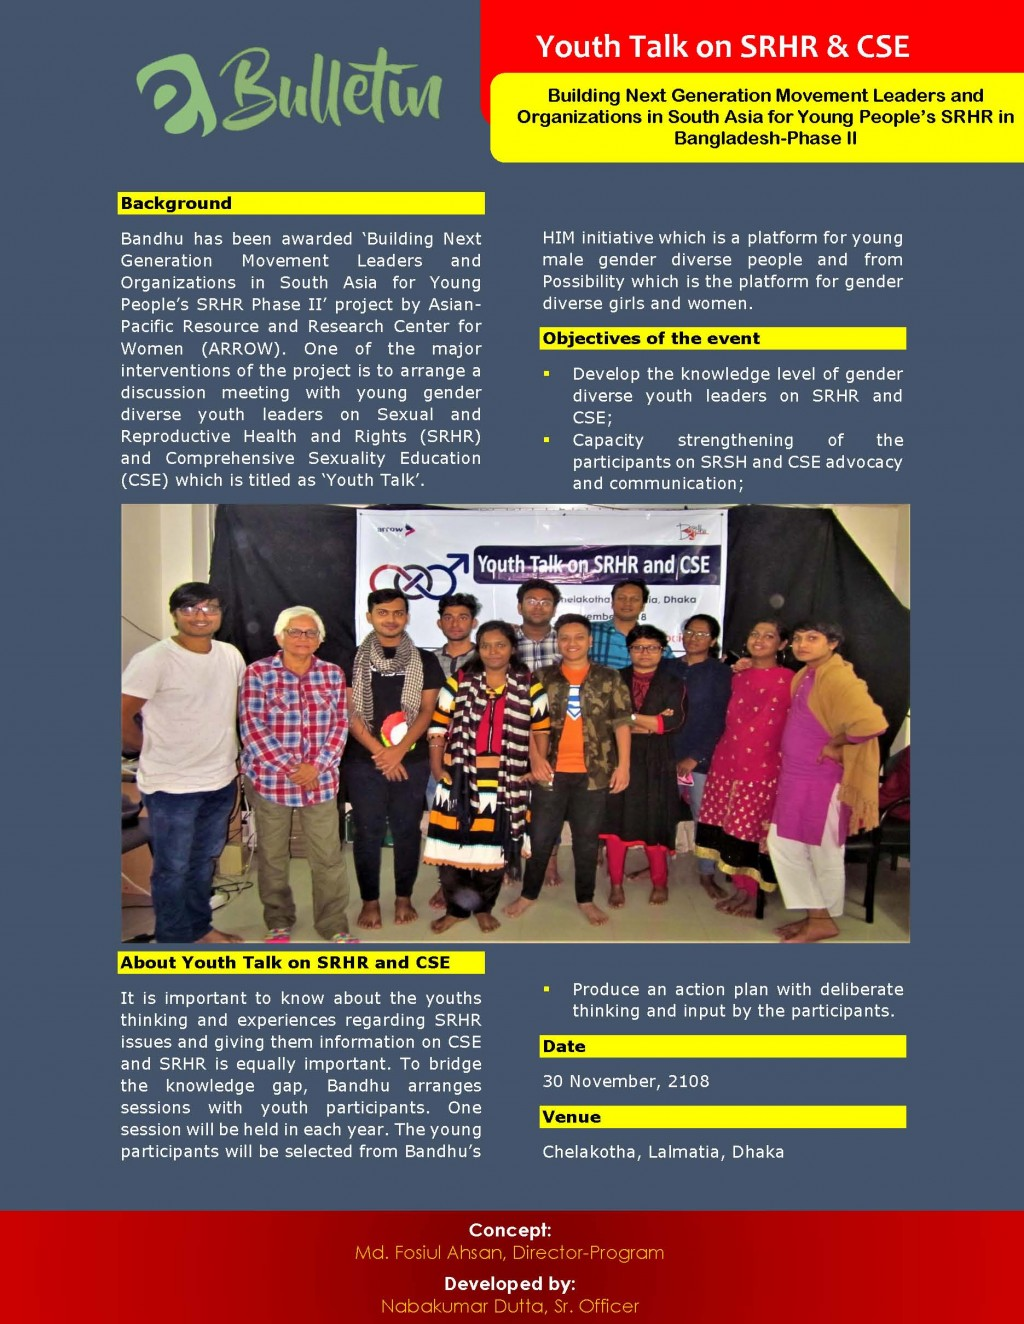 E-Bulletin_Youth Talk on SRHR & CSE_Page_1